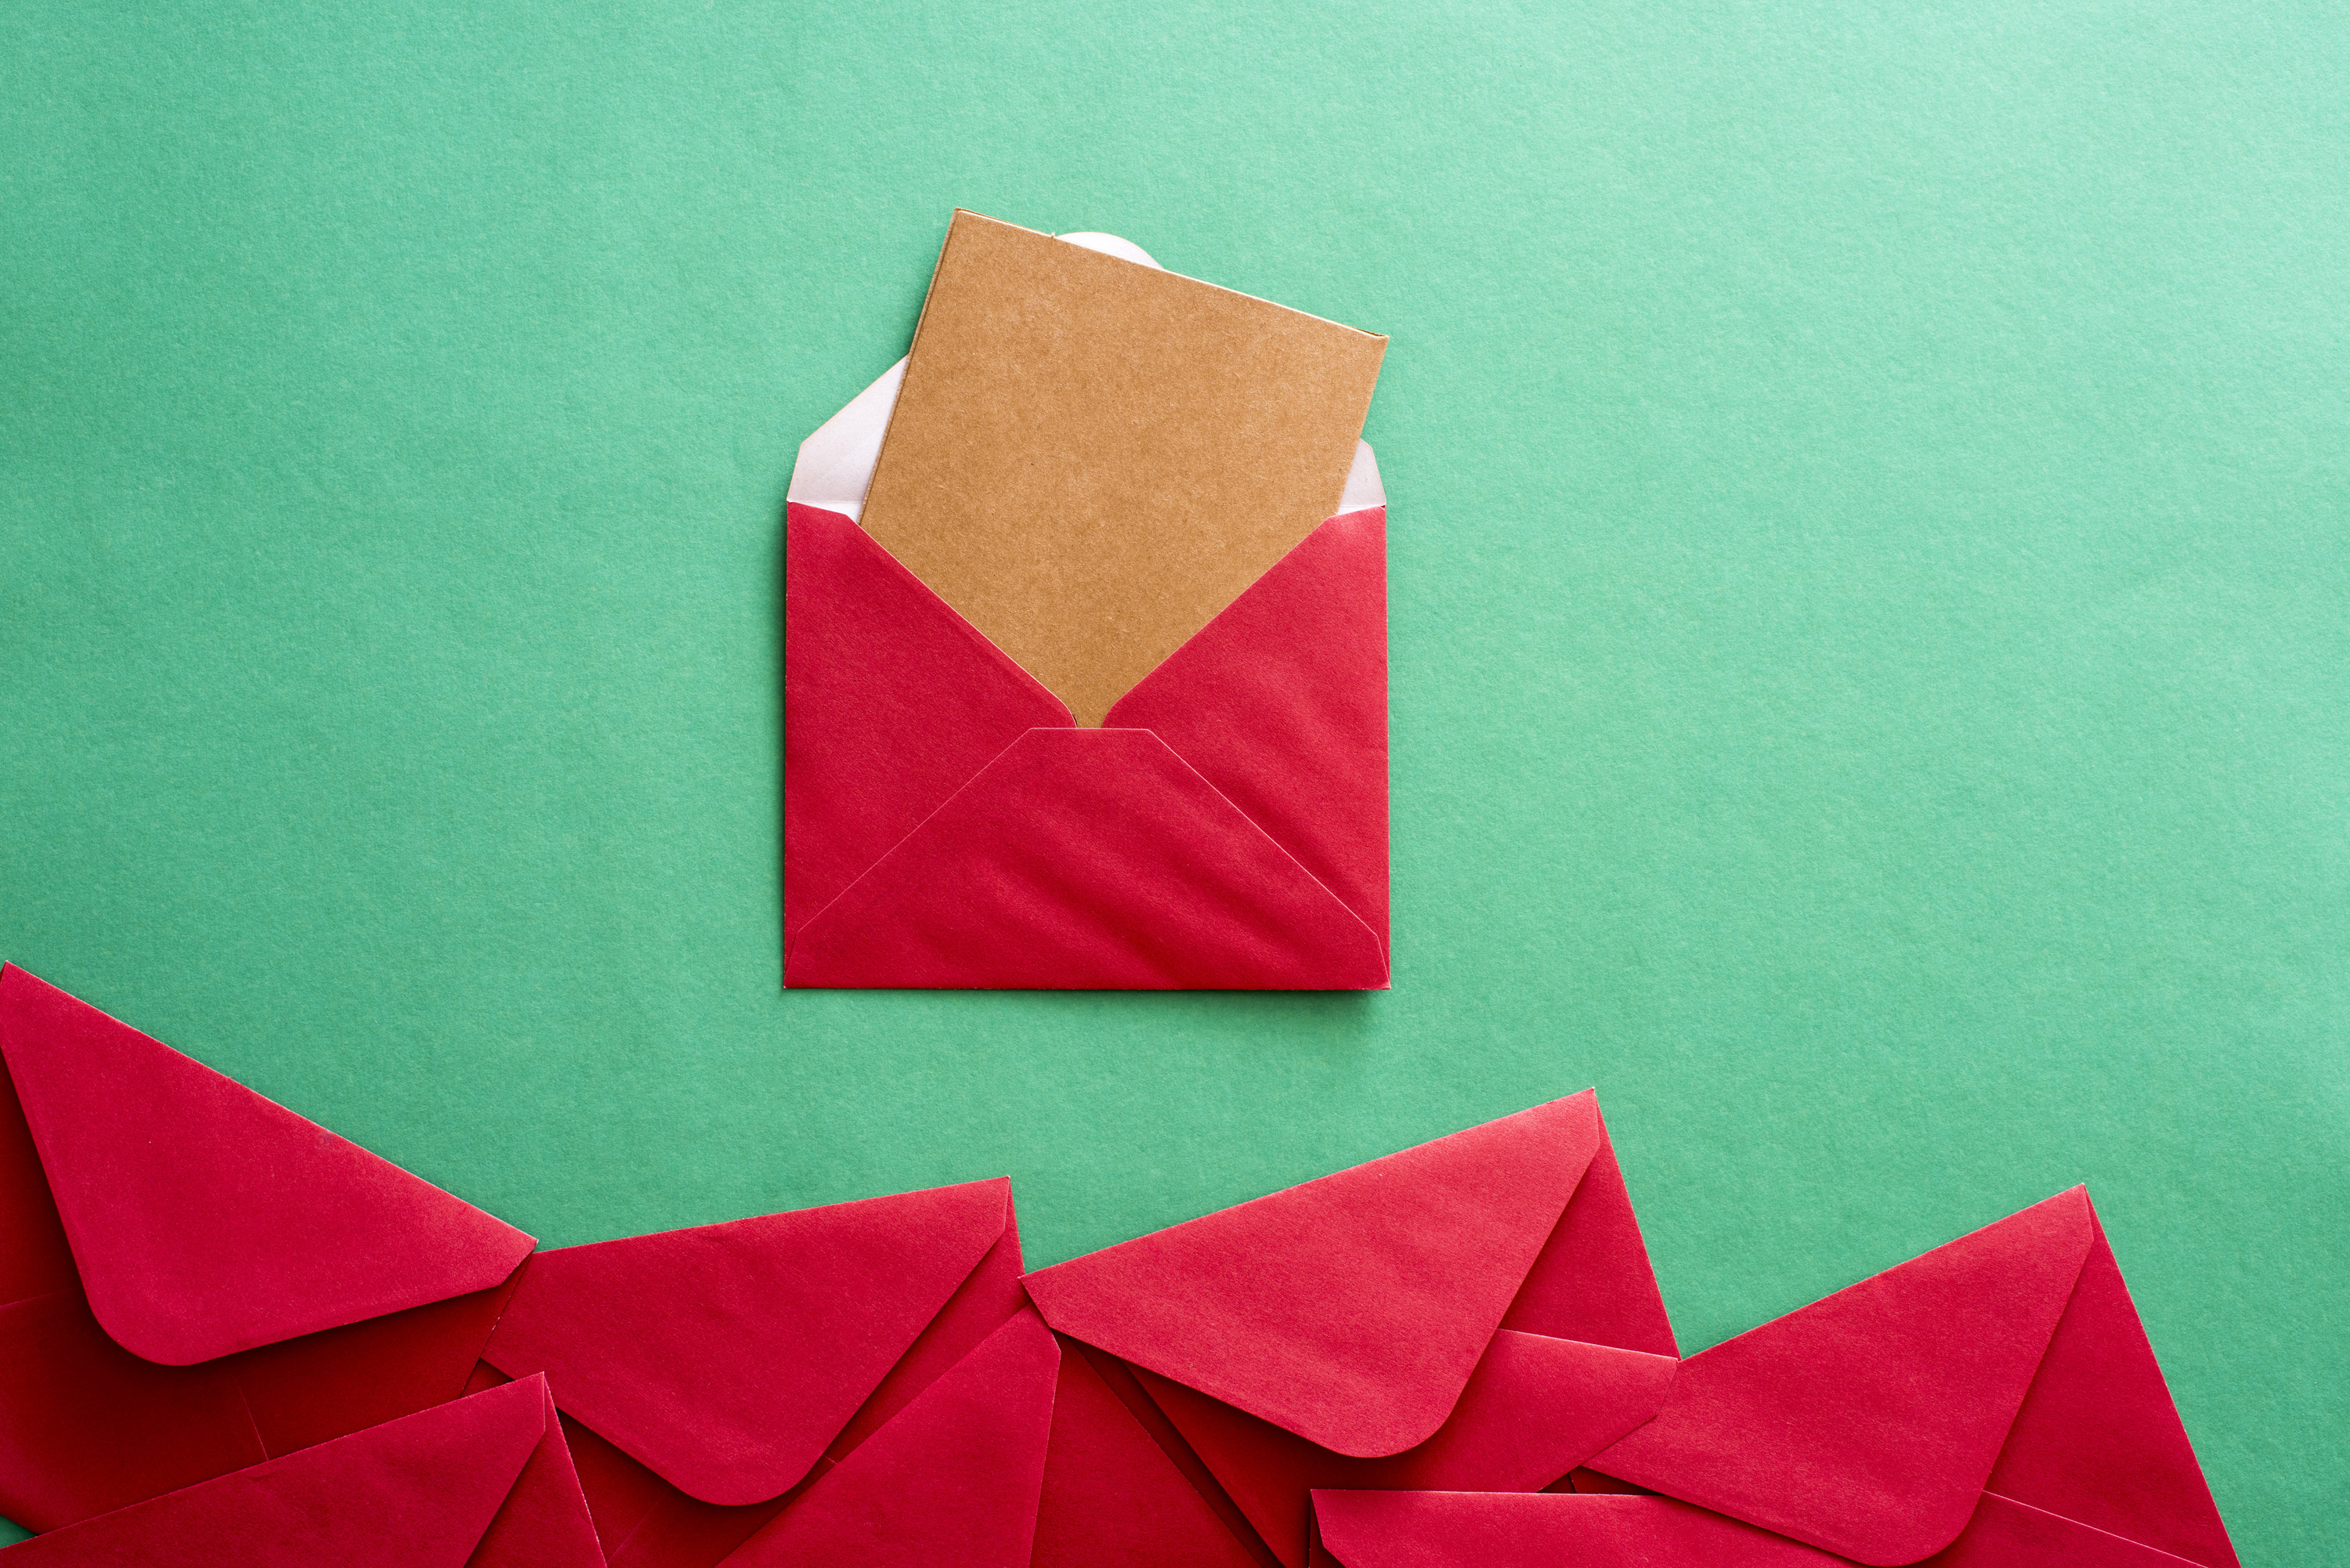 Opened red festive Christmas envelope with a blank brown card protruding from the flap on a green background with a lower border of more red envelopes